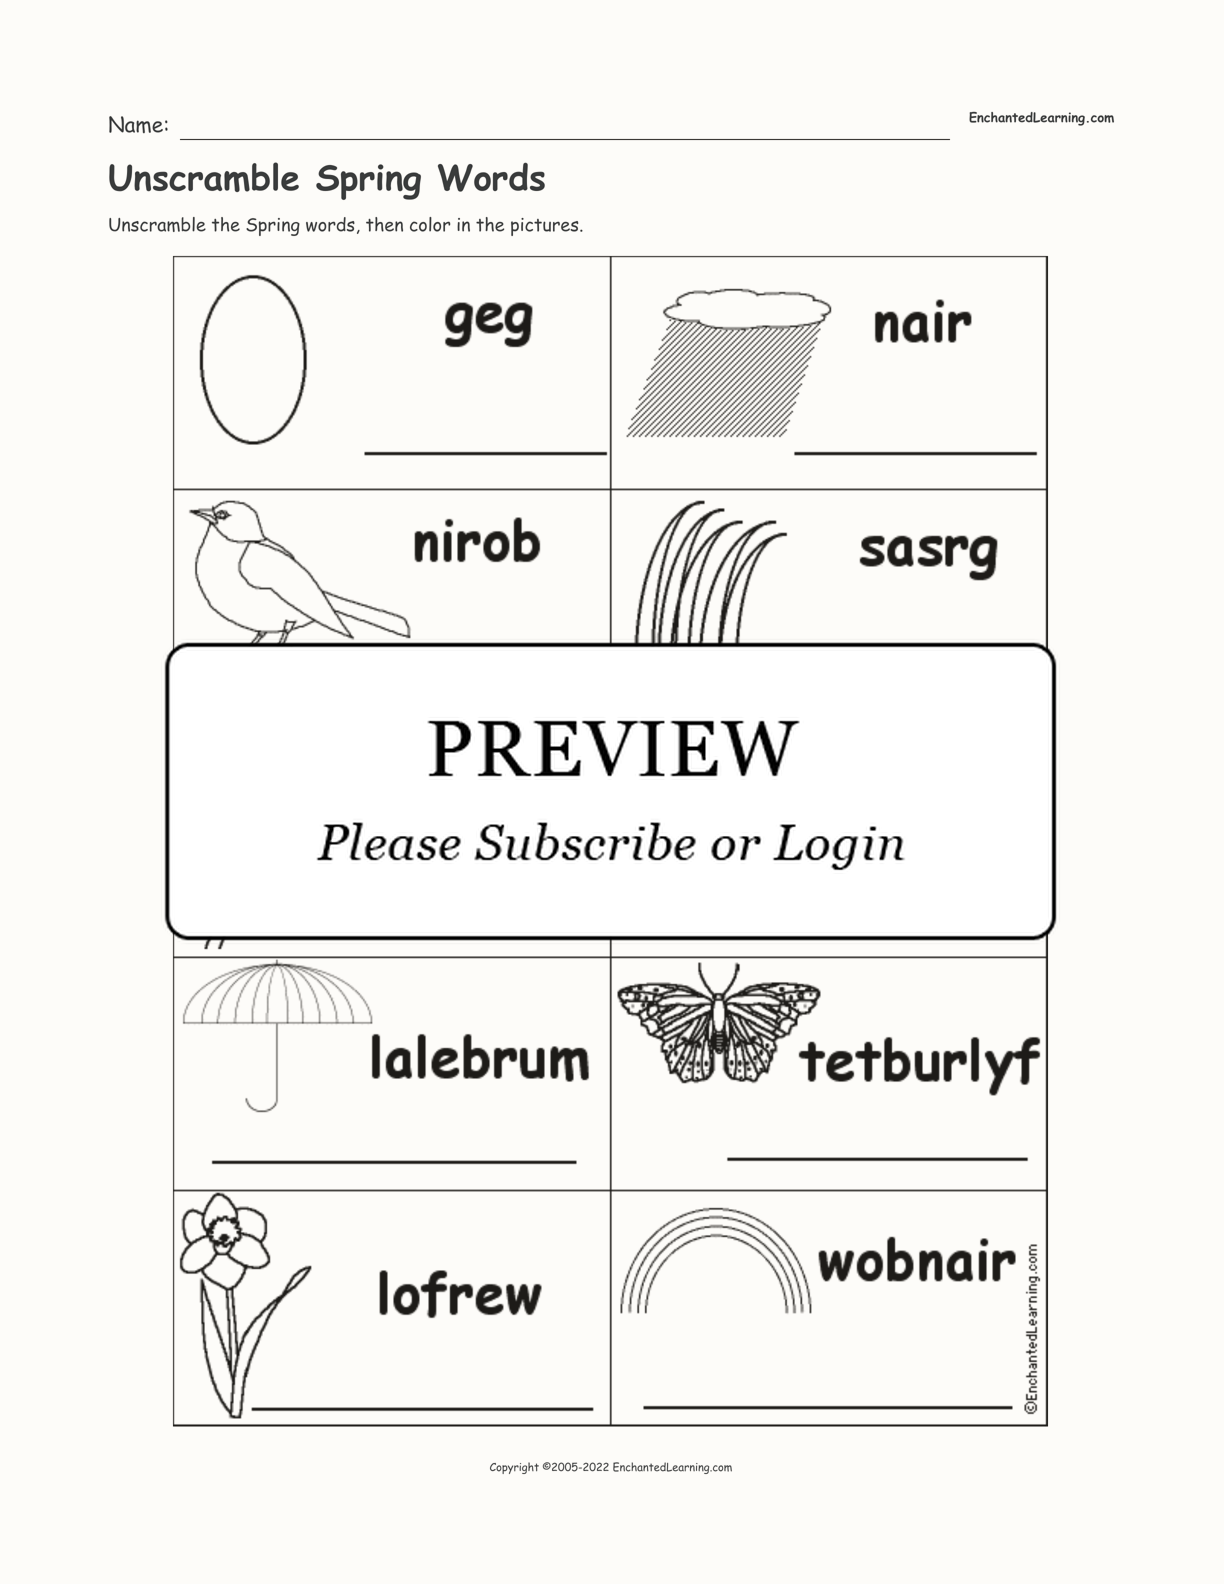 Unscramble Spring Words interactive worksheet page 1